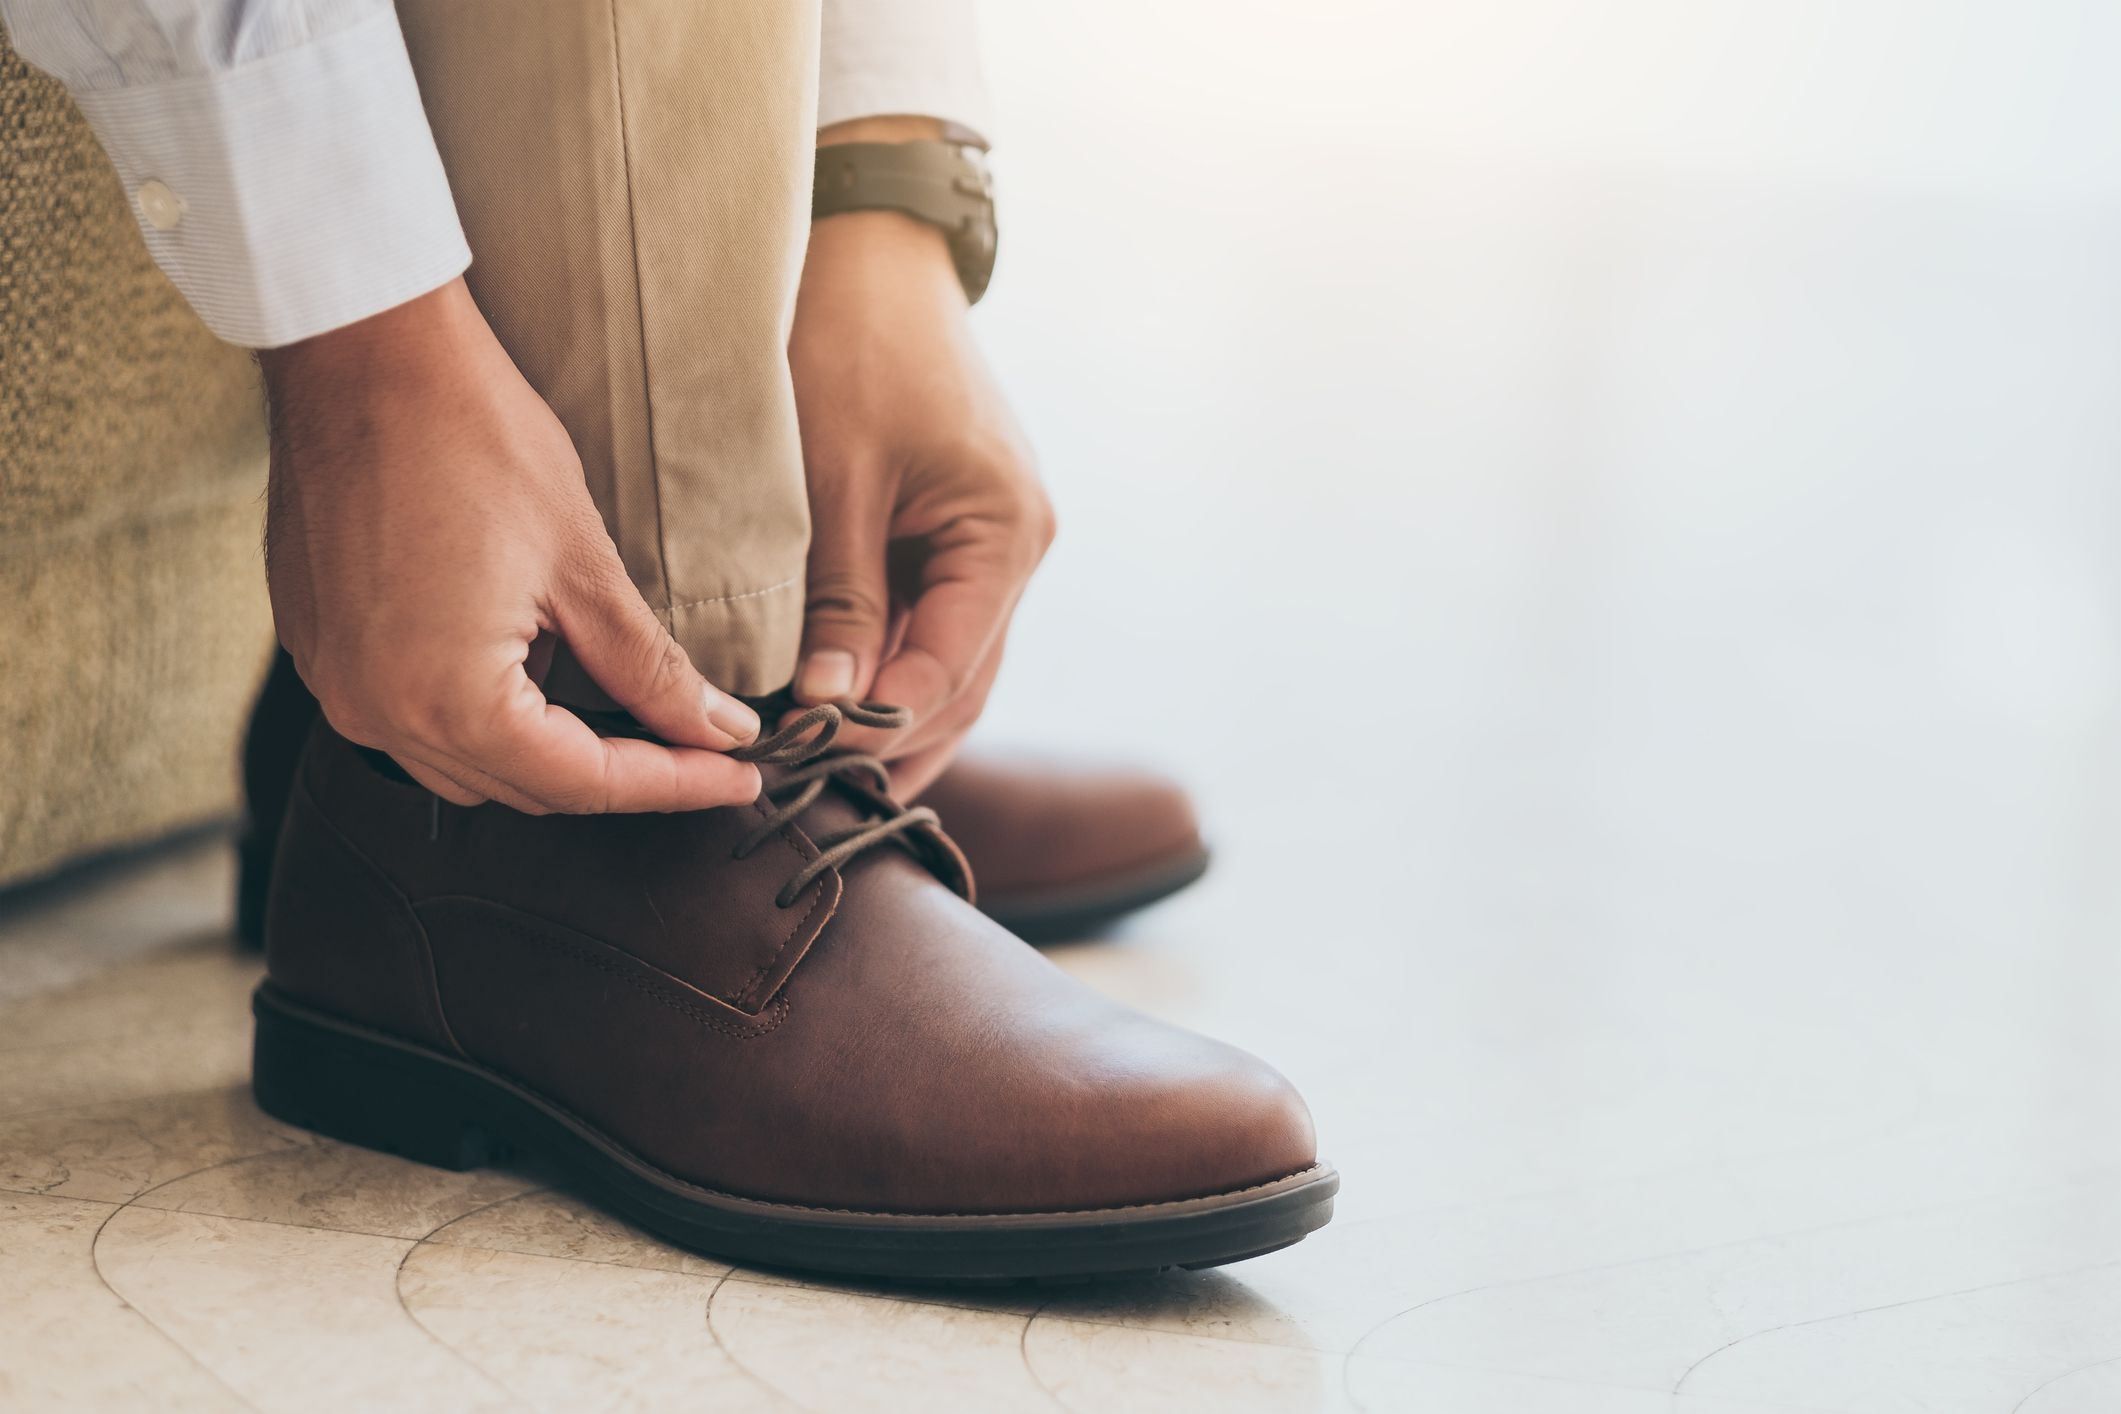 687b6e5d65e3 The Best Men s Dress Boots of 2019